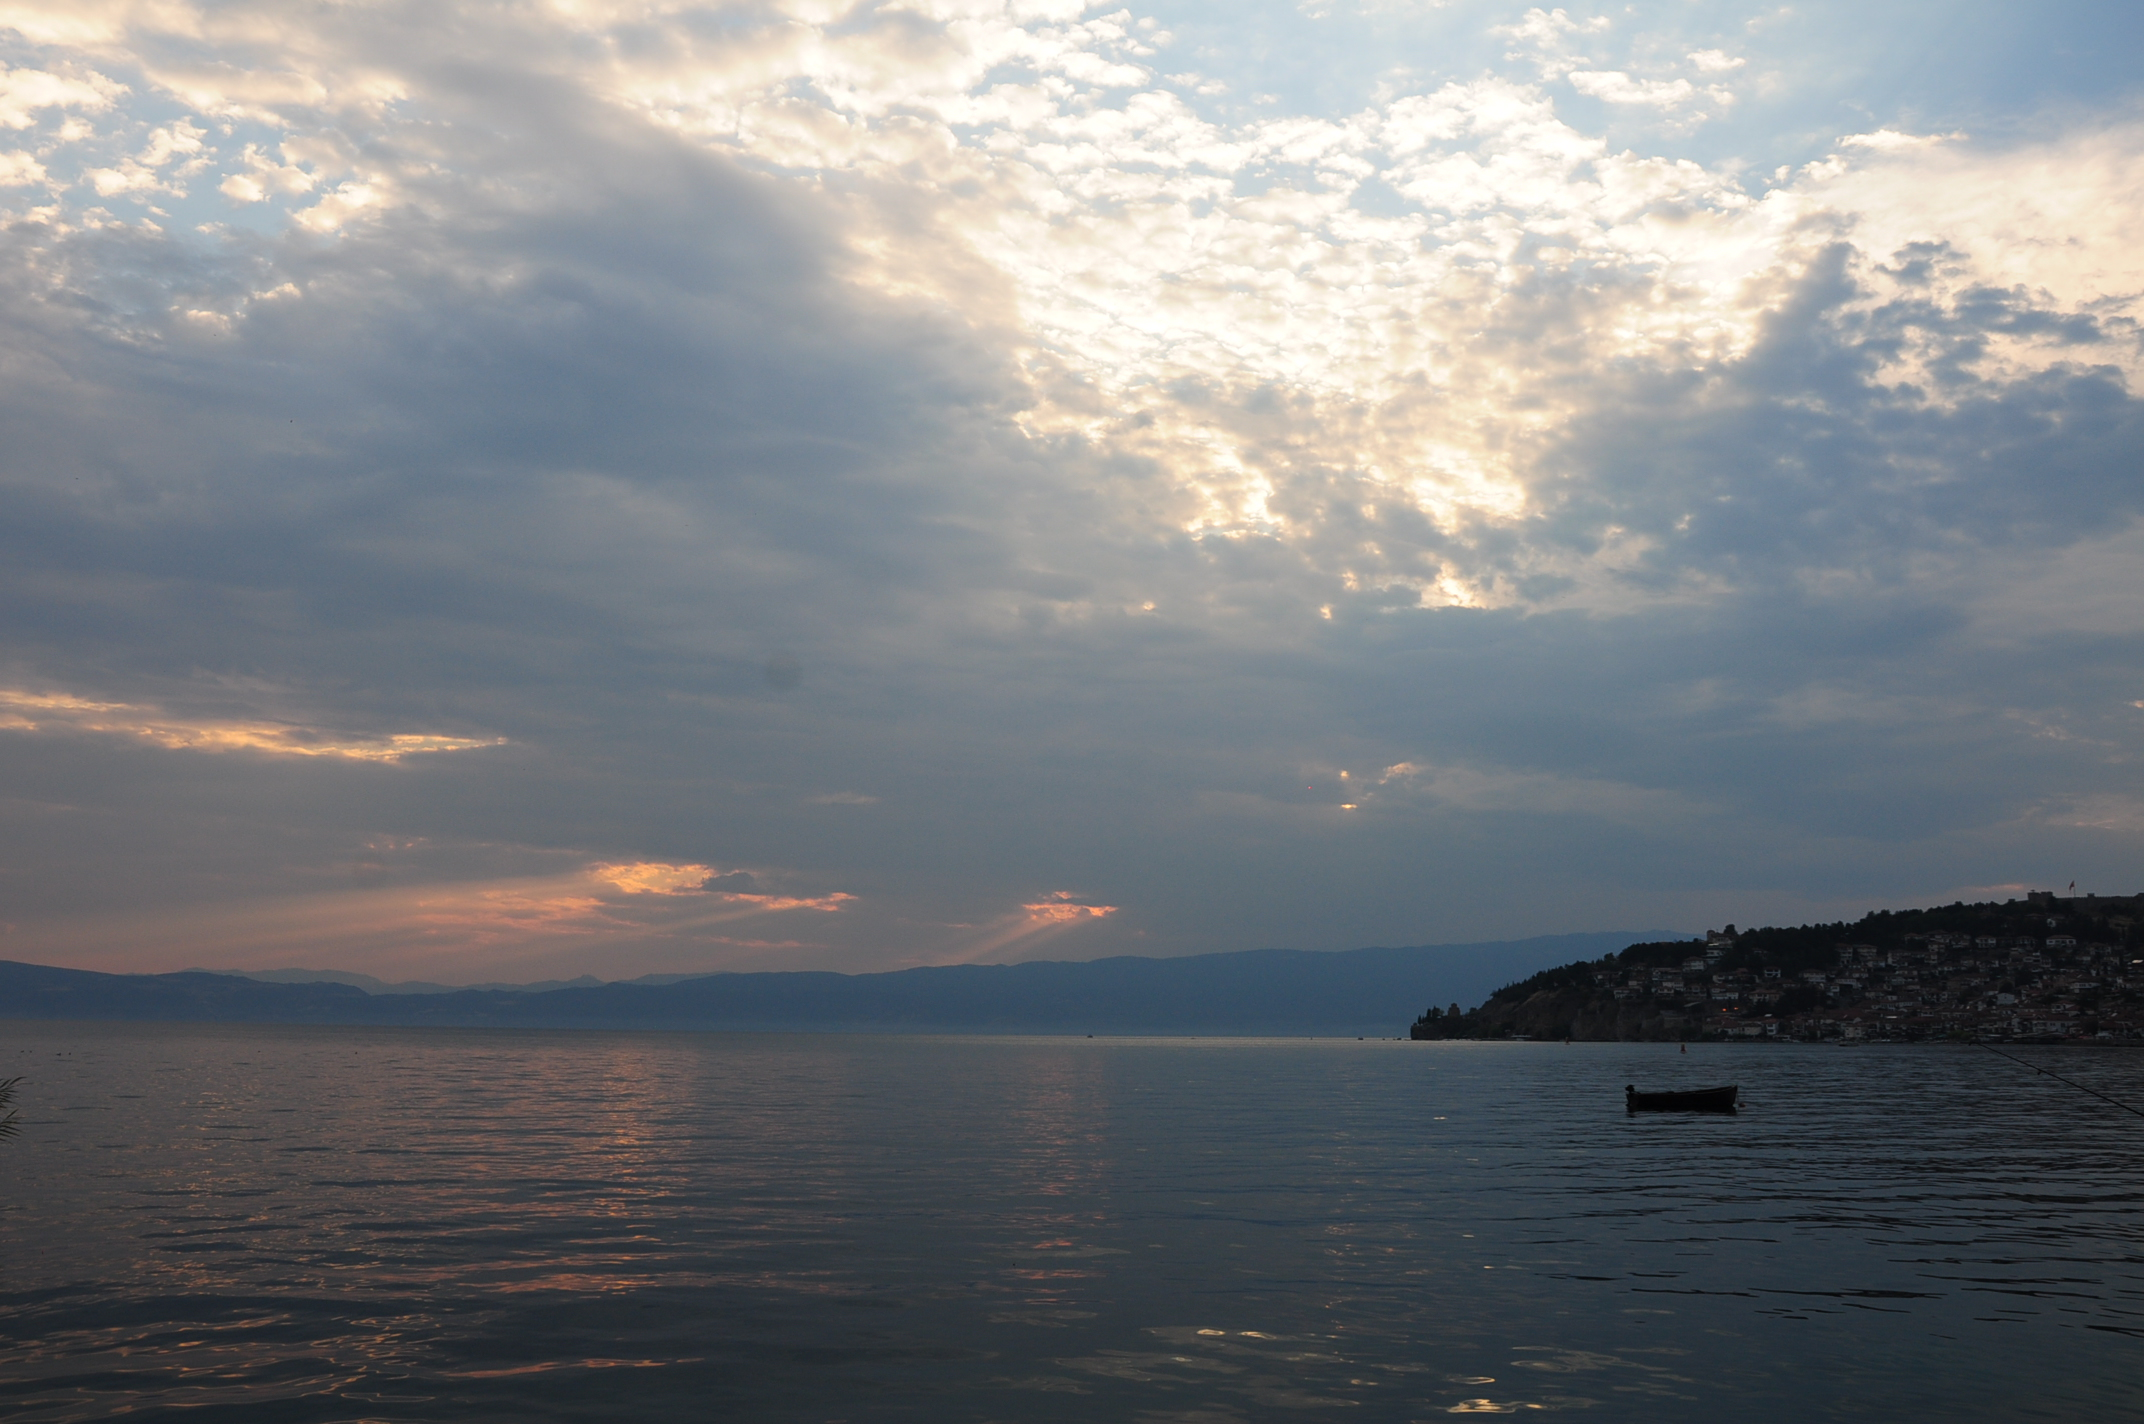 Late afternoon lights in Ohrid